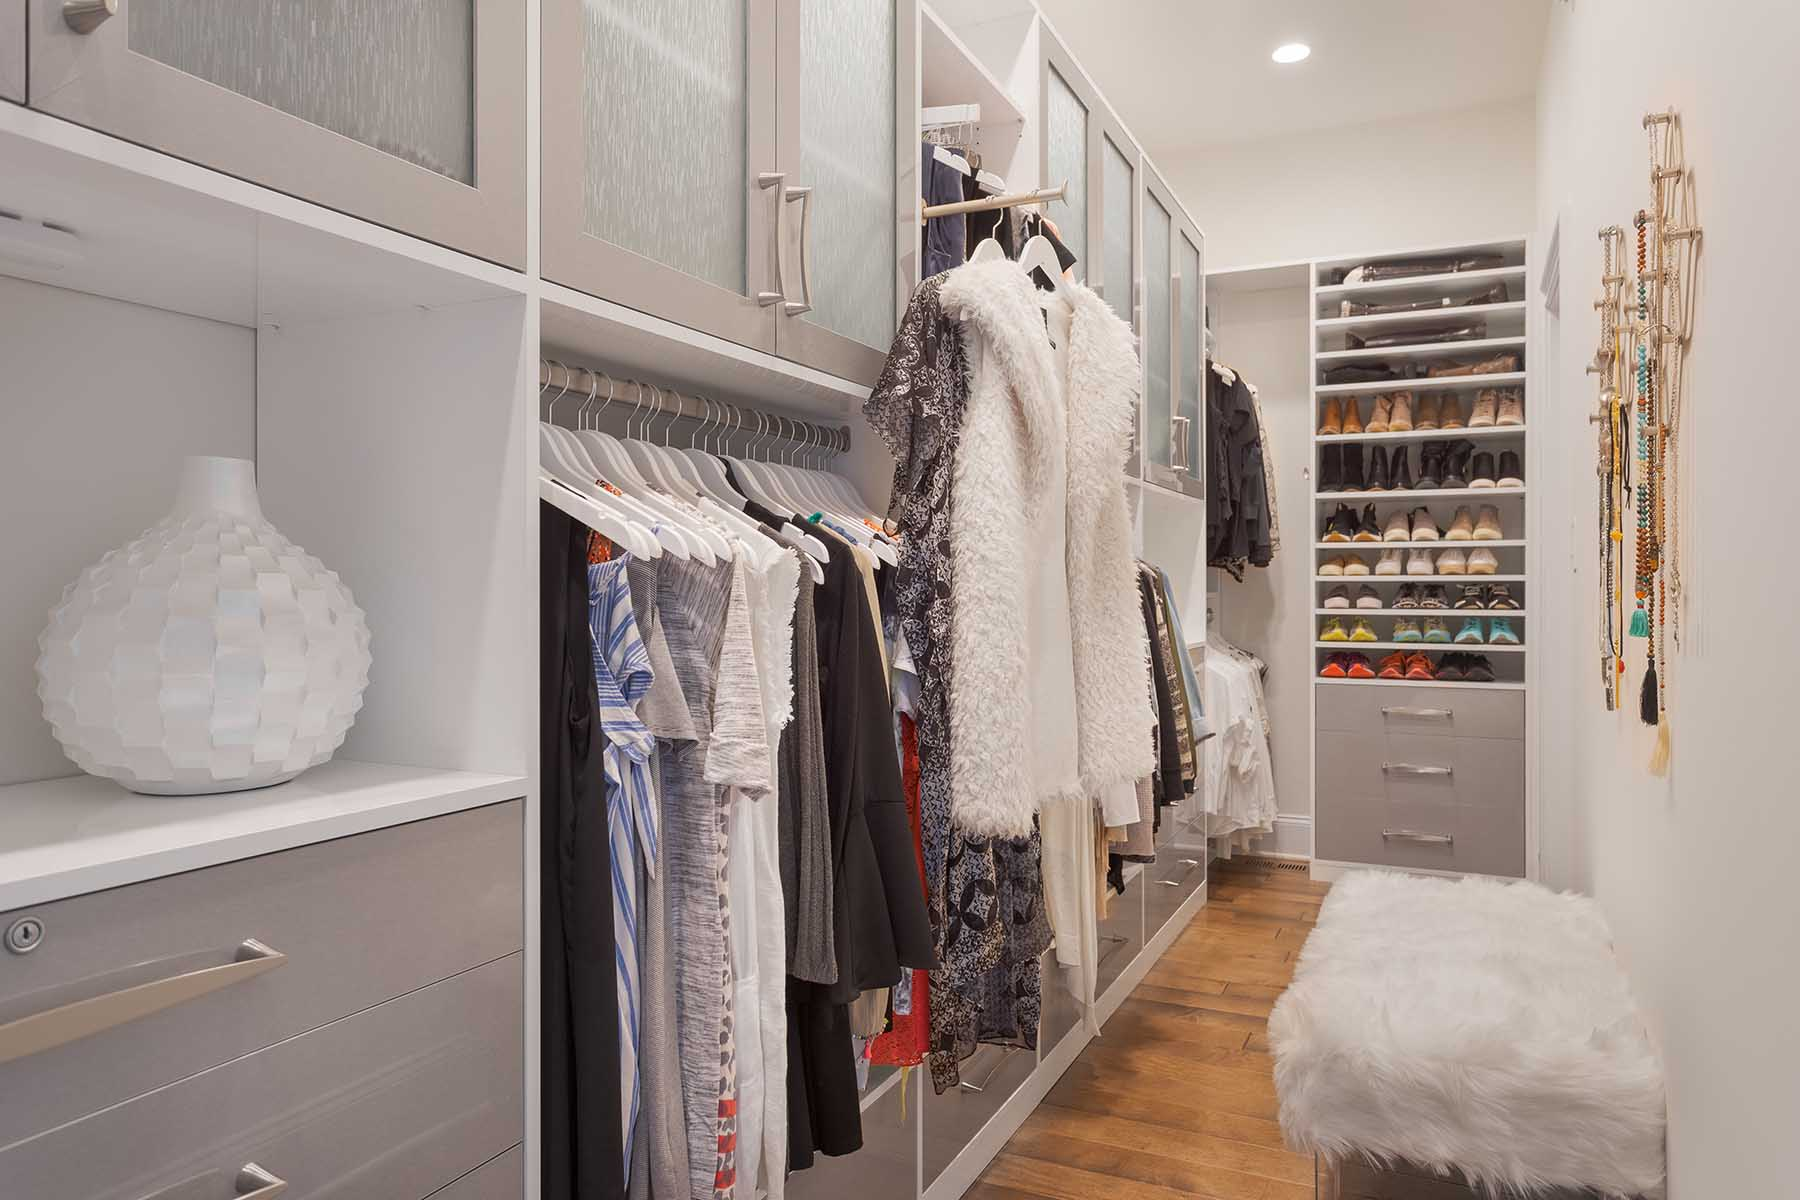 Walk-in closet with winter clothing organized